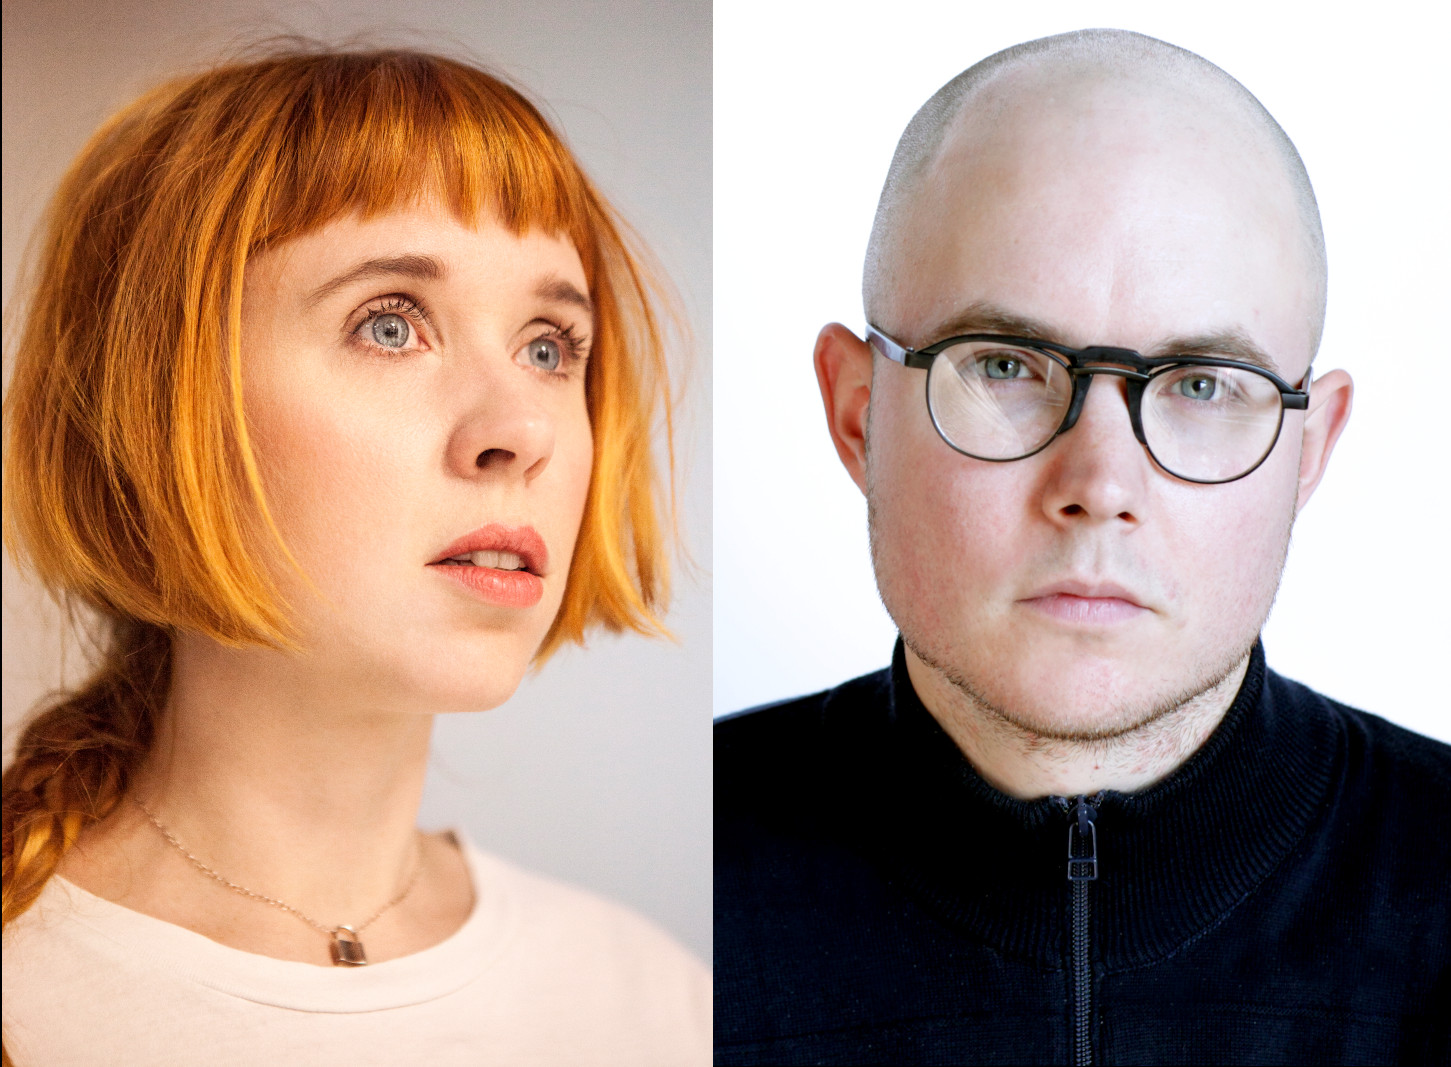 Holly Herndon by Press & Mat Dryhurst by Suzy Poling 2019